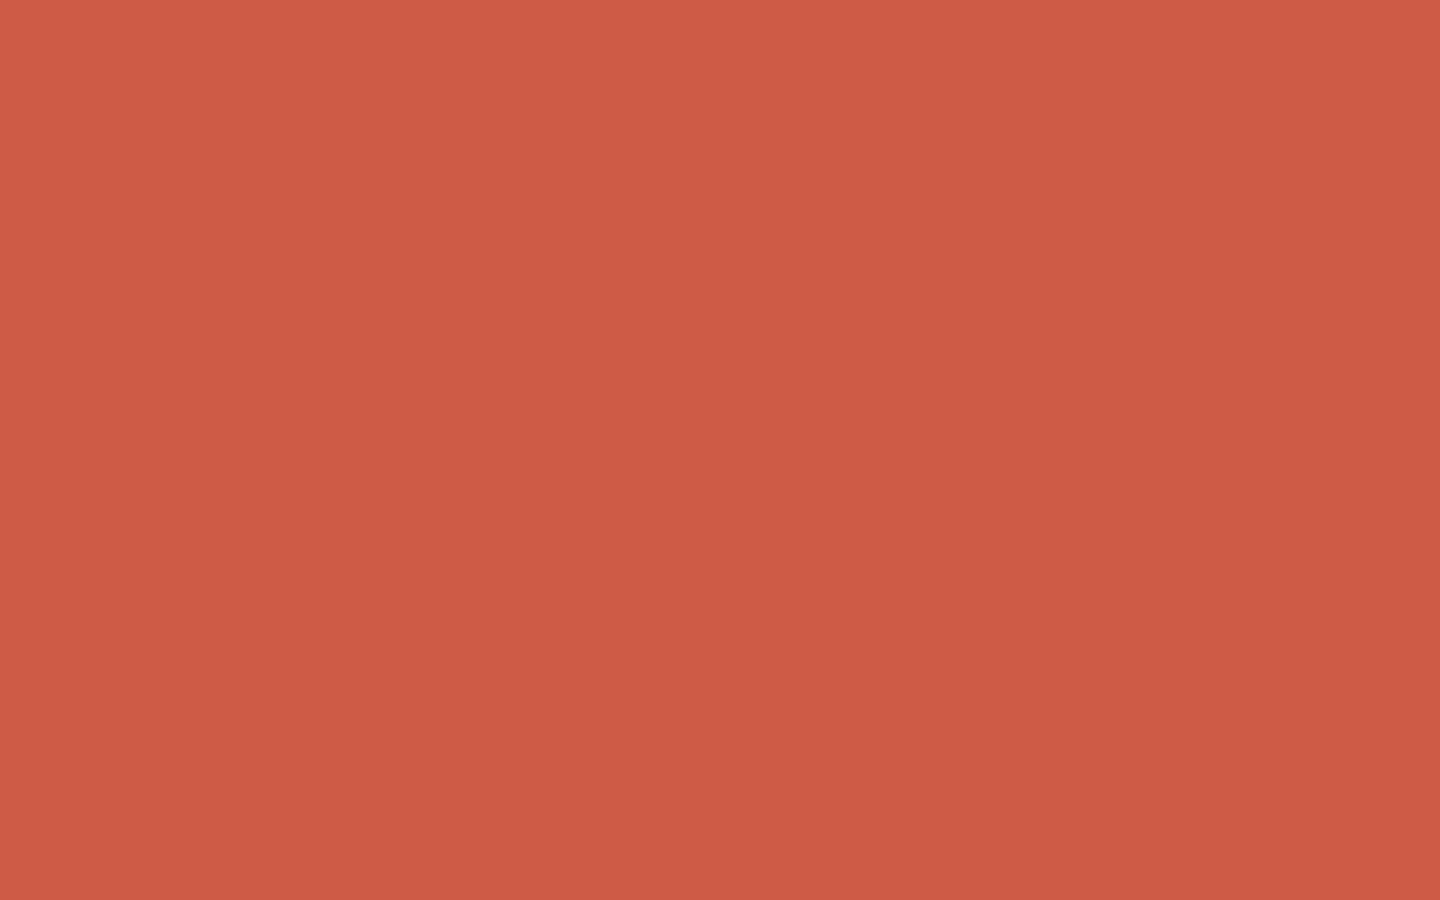 1440x900 Dark Coral Solid Color Background